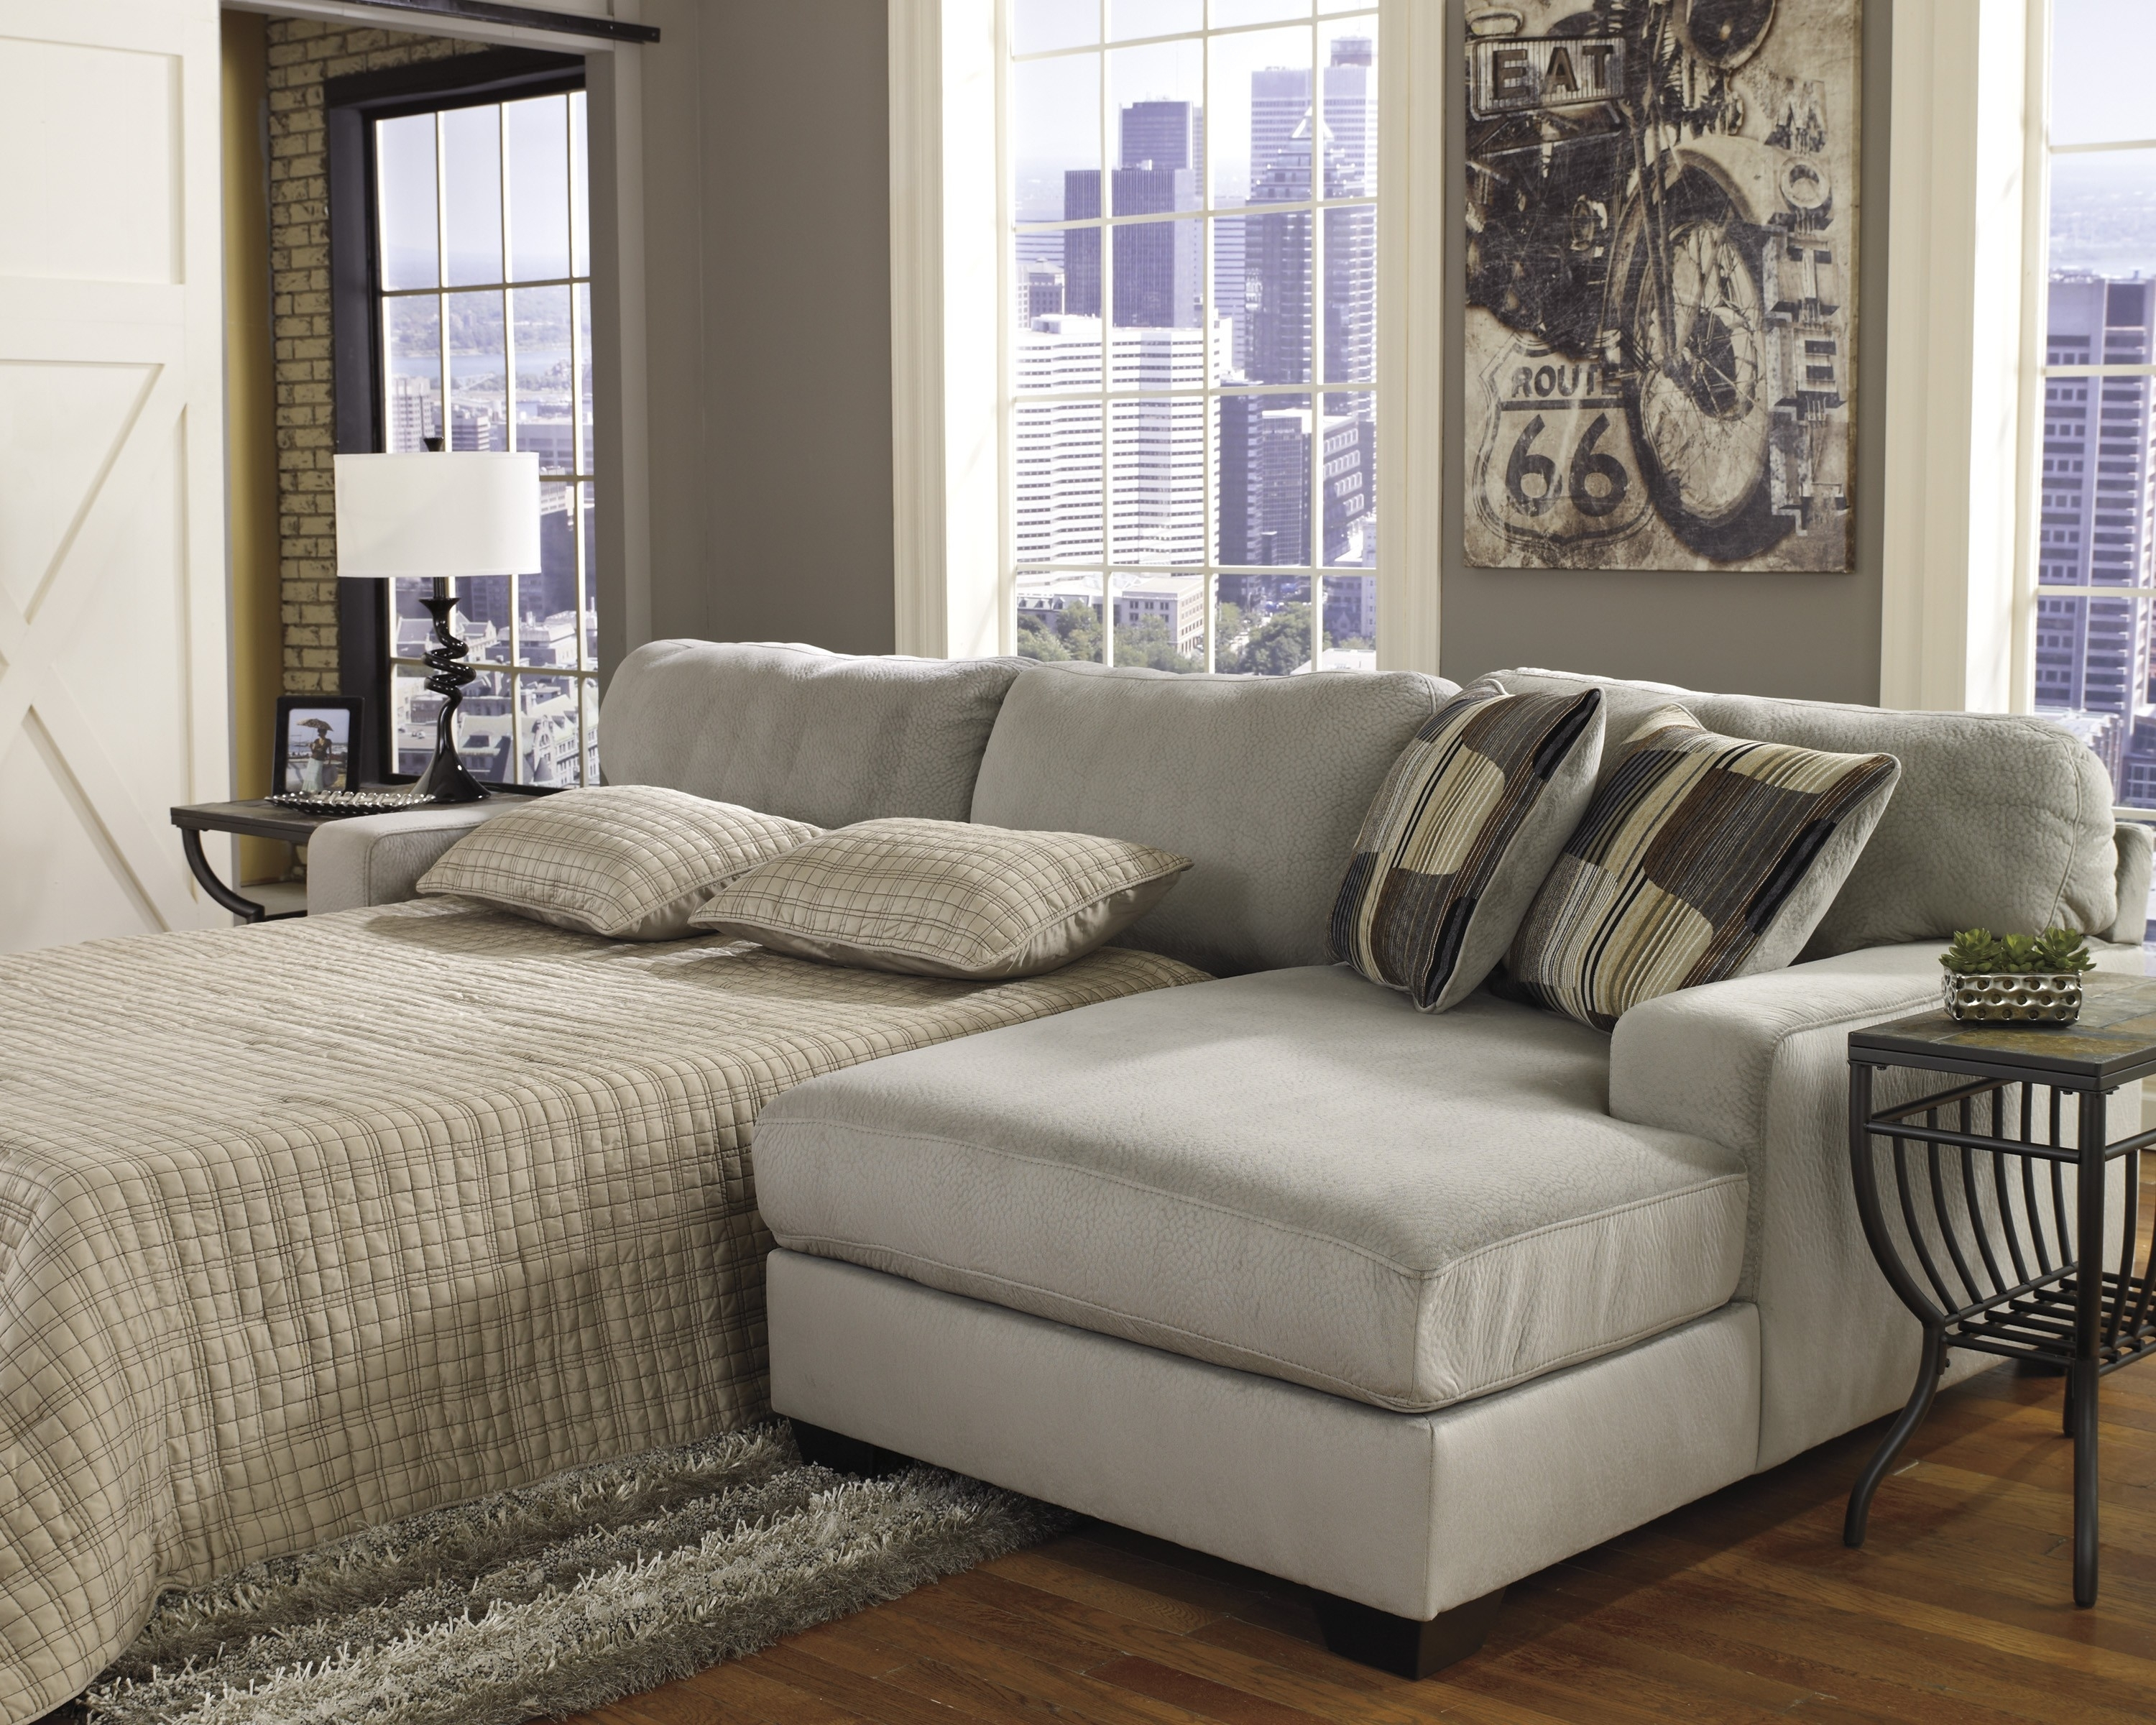 Sofa : Magnificent Sectional Sofa Queen Bed Great Sleeper Sectionals Inside Adjustable Sectional Sofas With Queen Bed (Image 8 of 10)